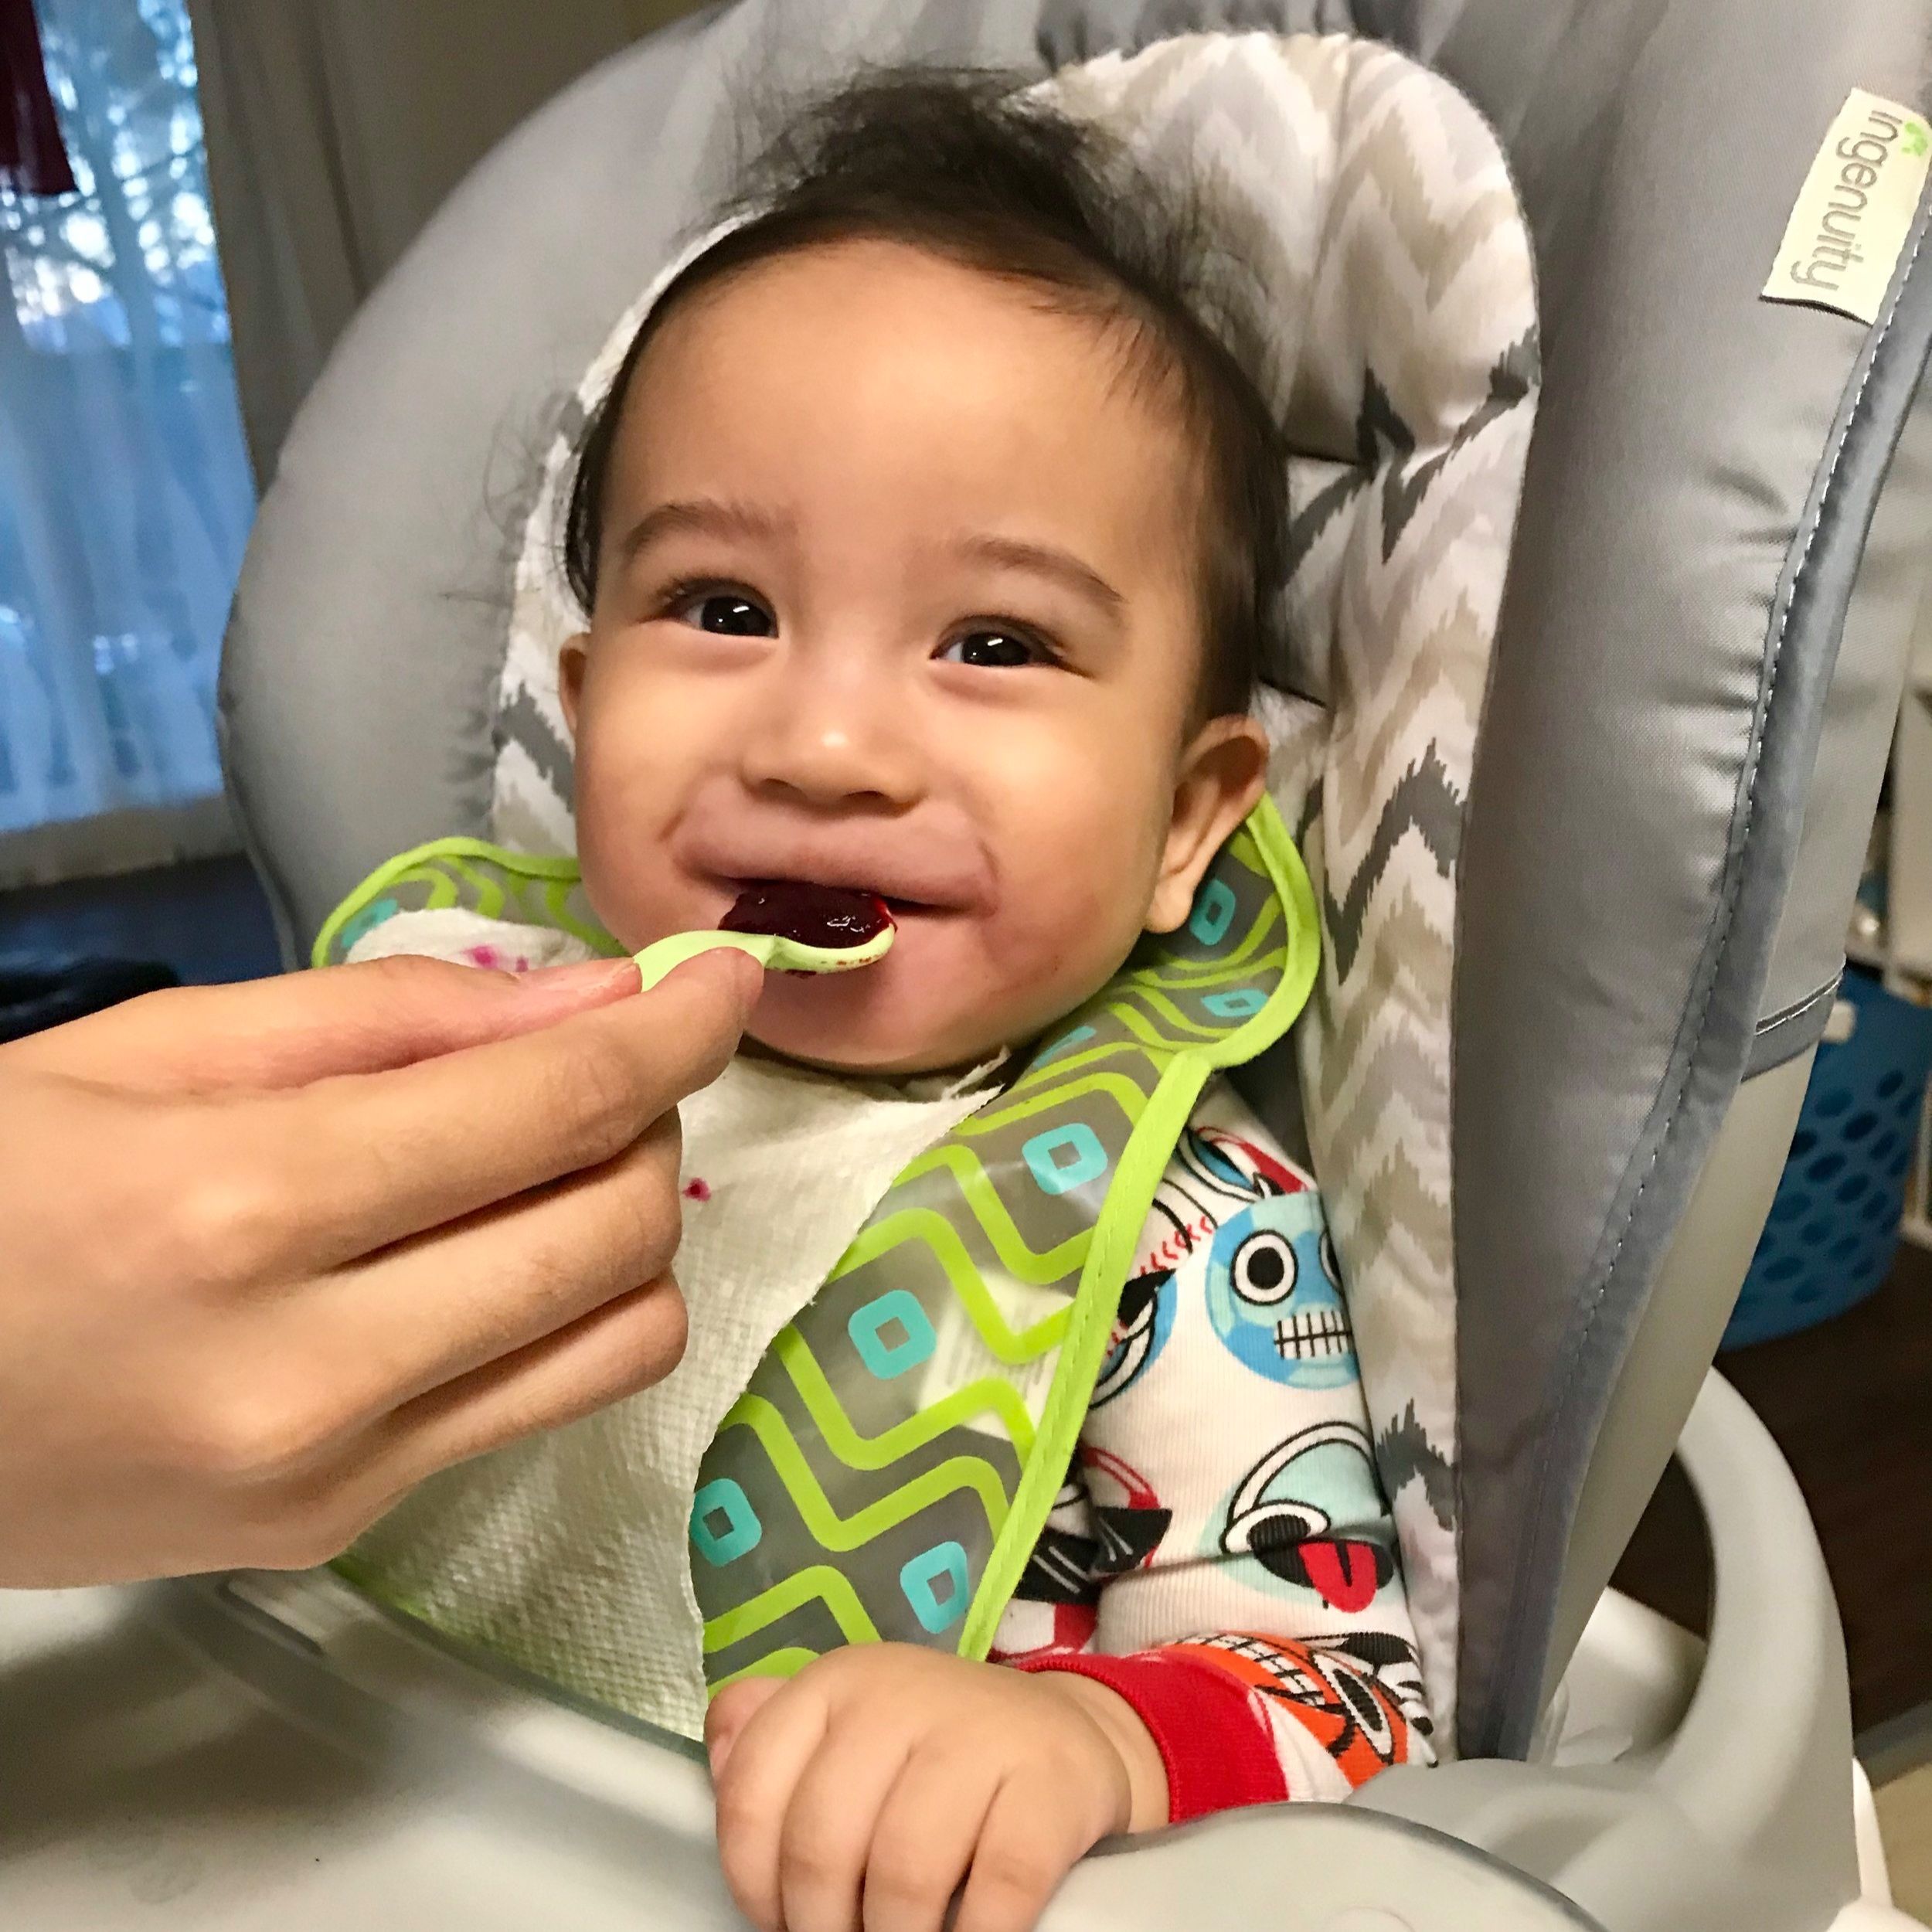 """""""We are so happy ordering Born Bright Foods as his first foods. Not only is it fresh but I can't believe how yummy the flavors are!""""- Gem, Mom of 1 -"""